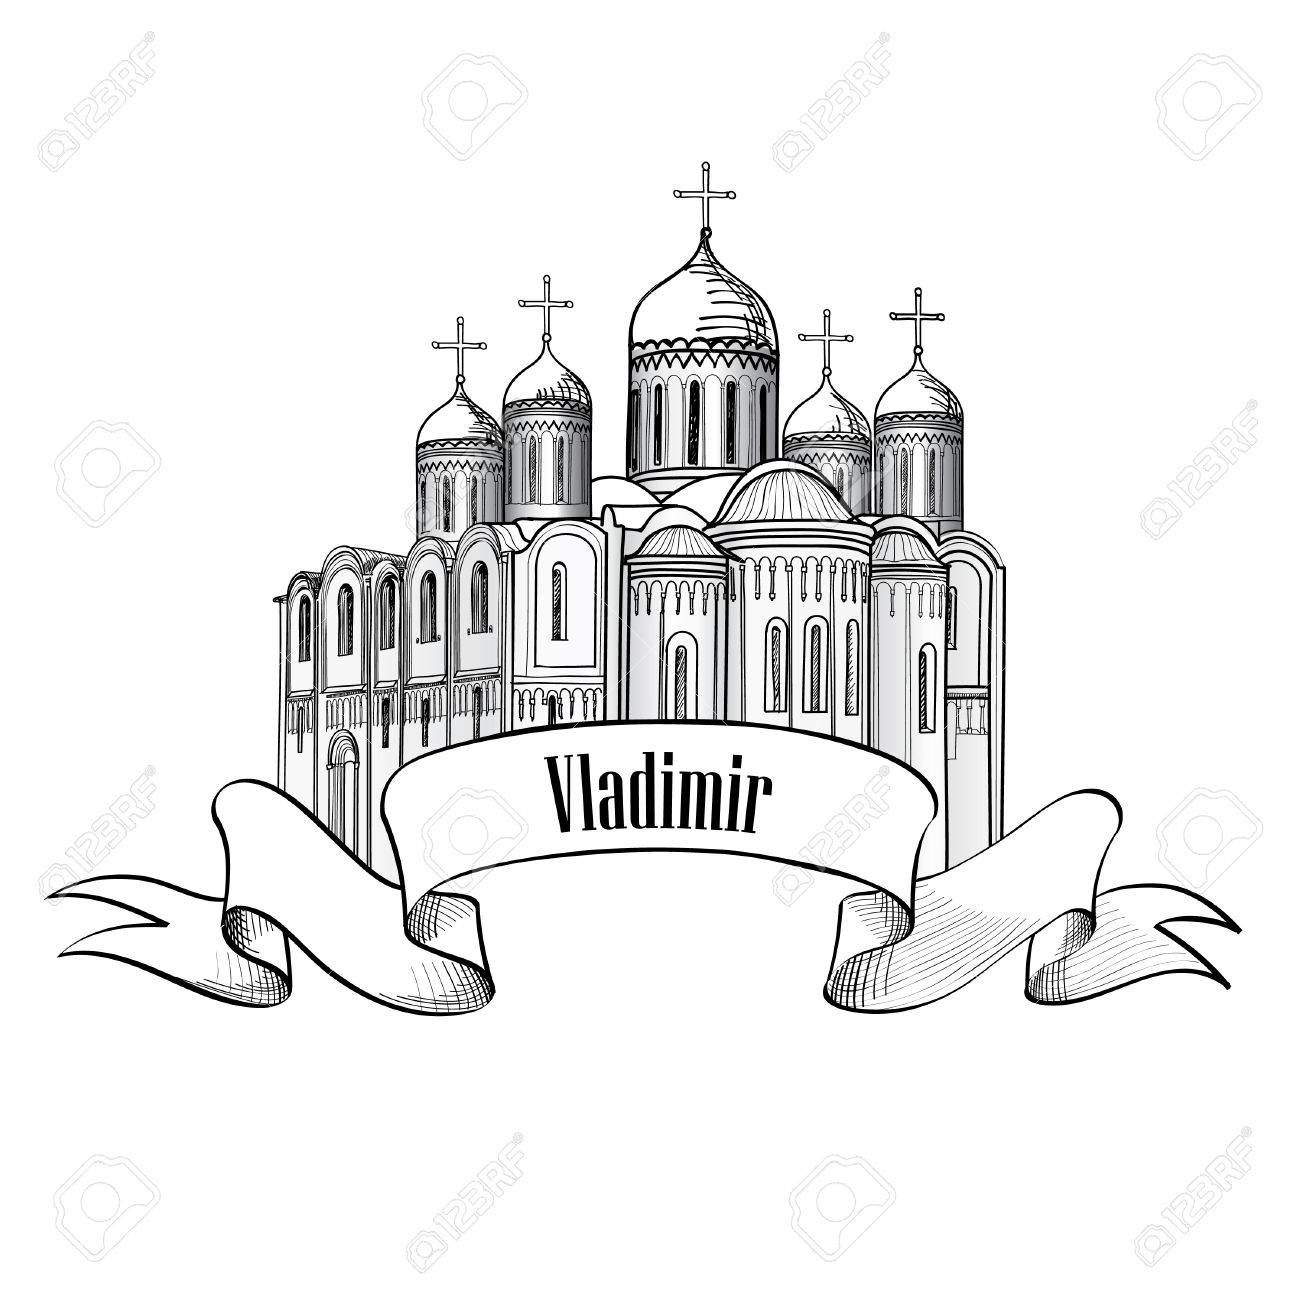 1300x1300 Dormition Cathedral In Vladimir. Ancient Russian City Symbol